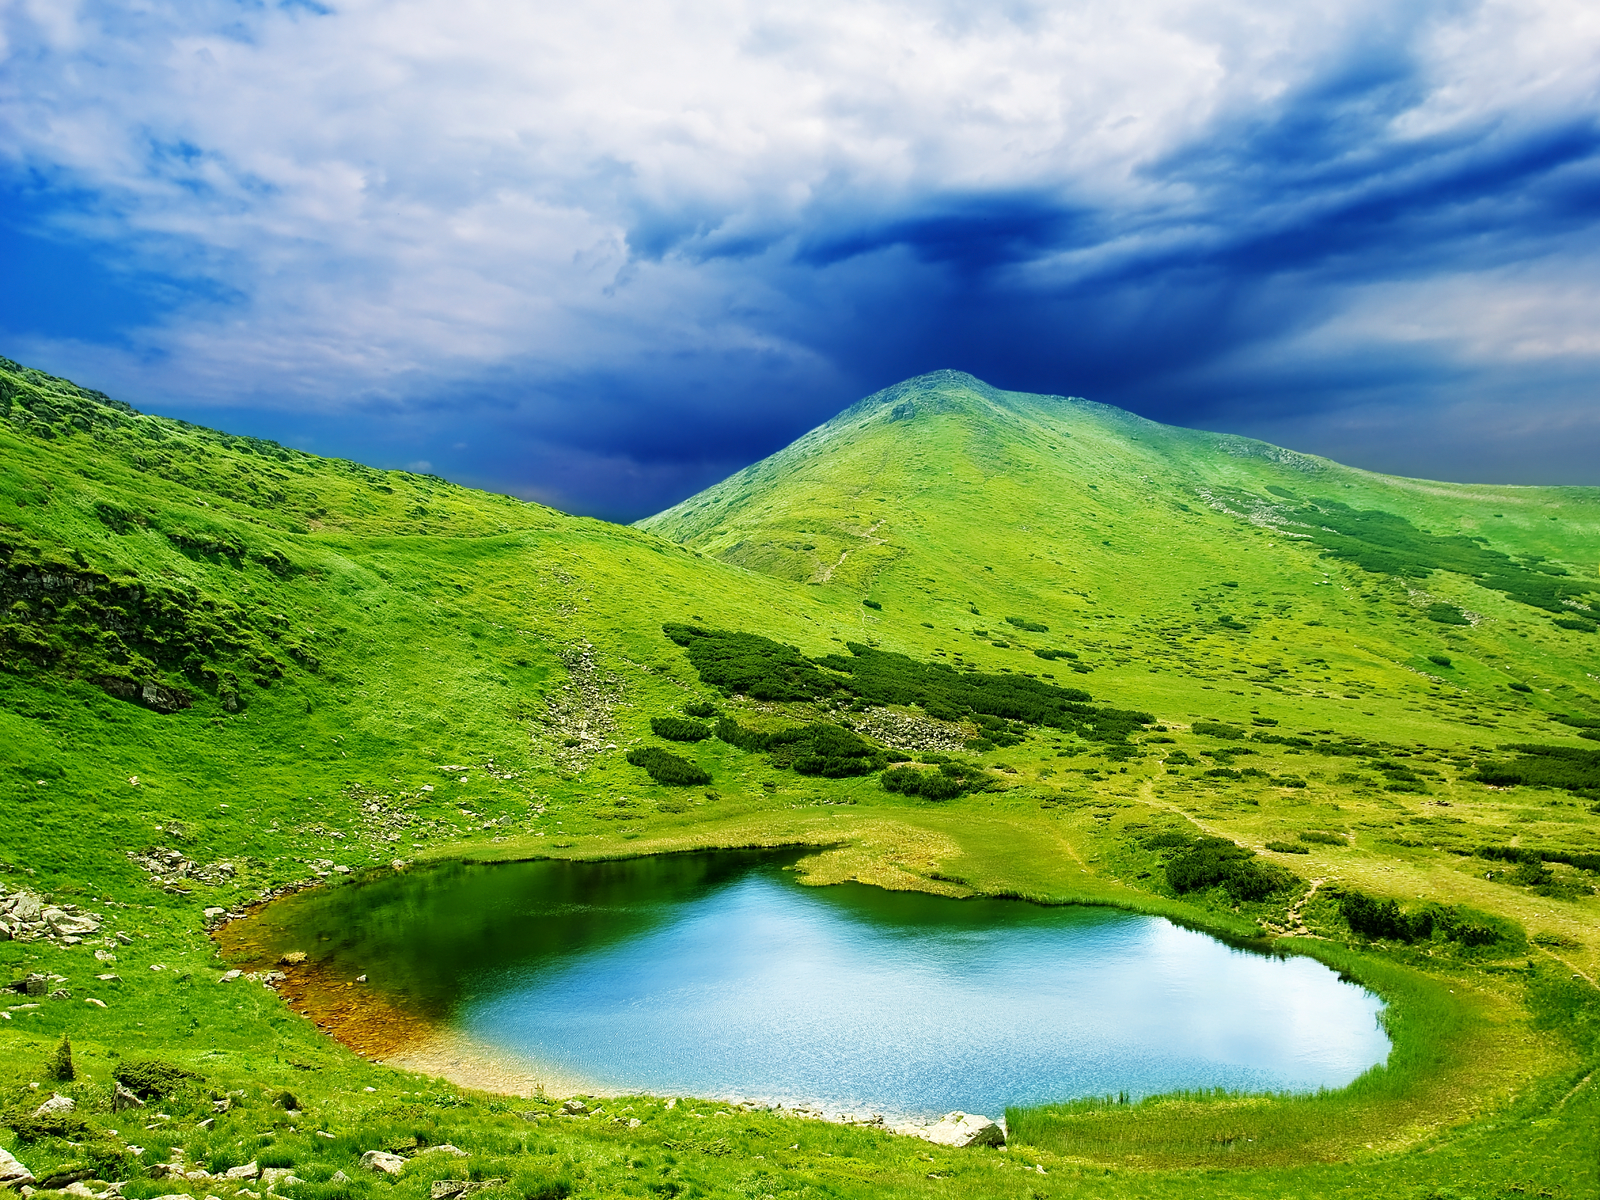 Must see Wallpaper Mountain Spring - Rs3GoU  Pic_212276.png